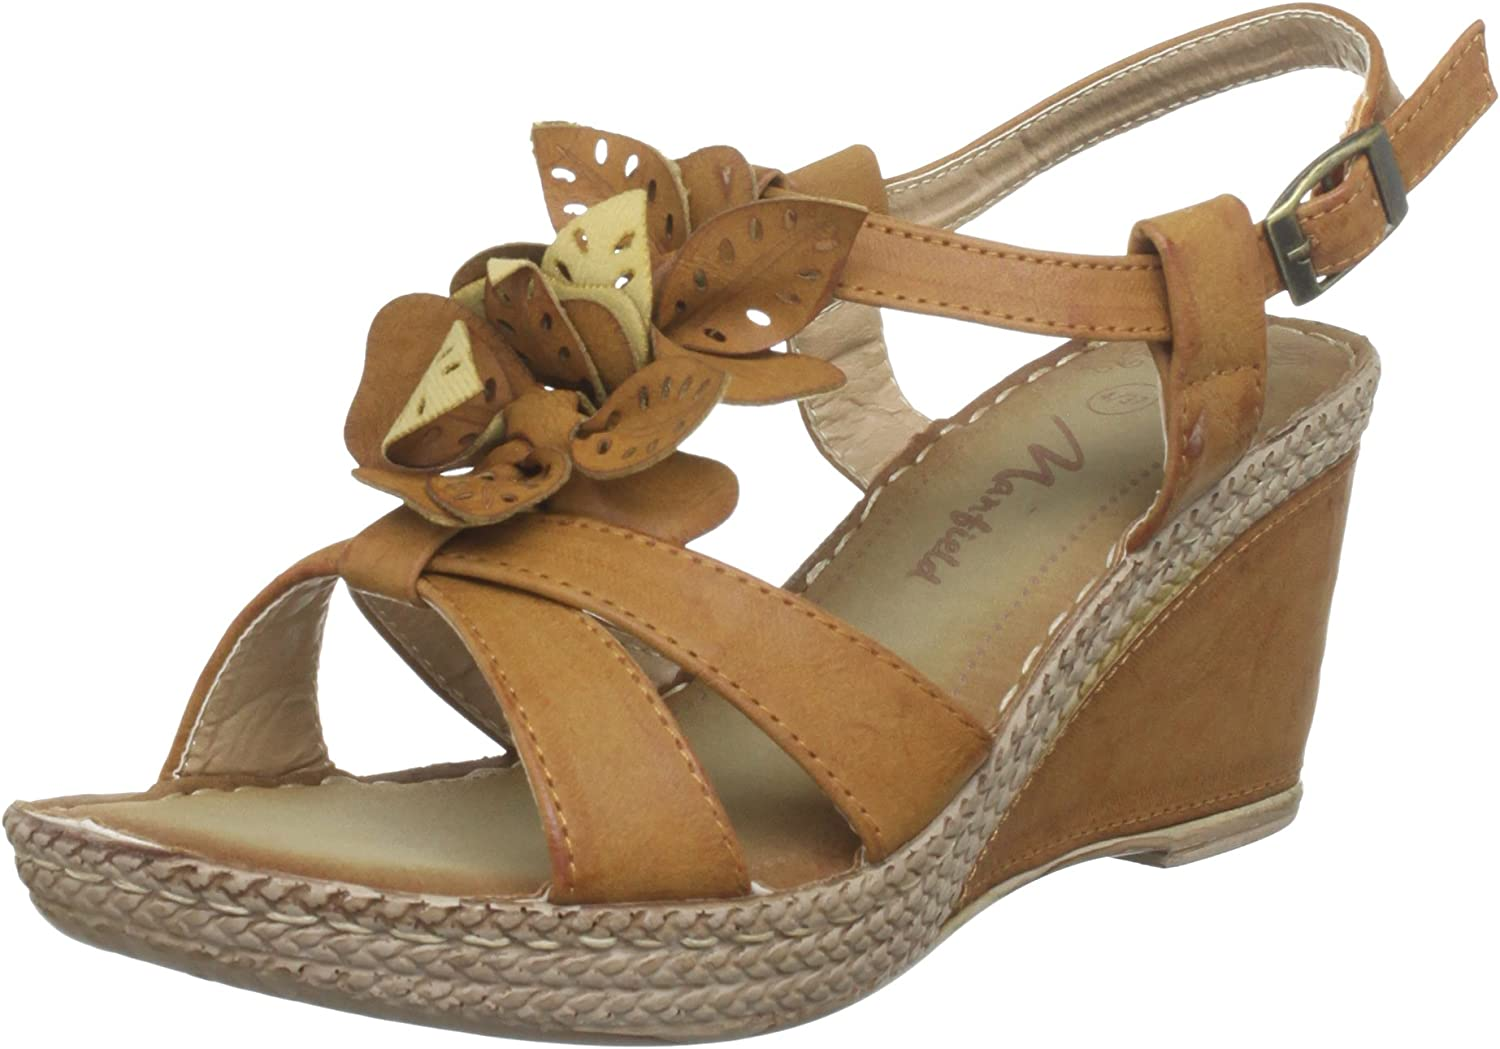 Manfield Indiana, Sandales Femme Marron Brun, 35 (3 UK